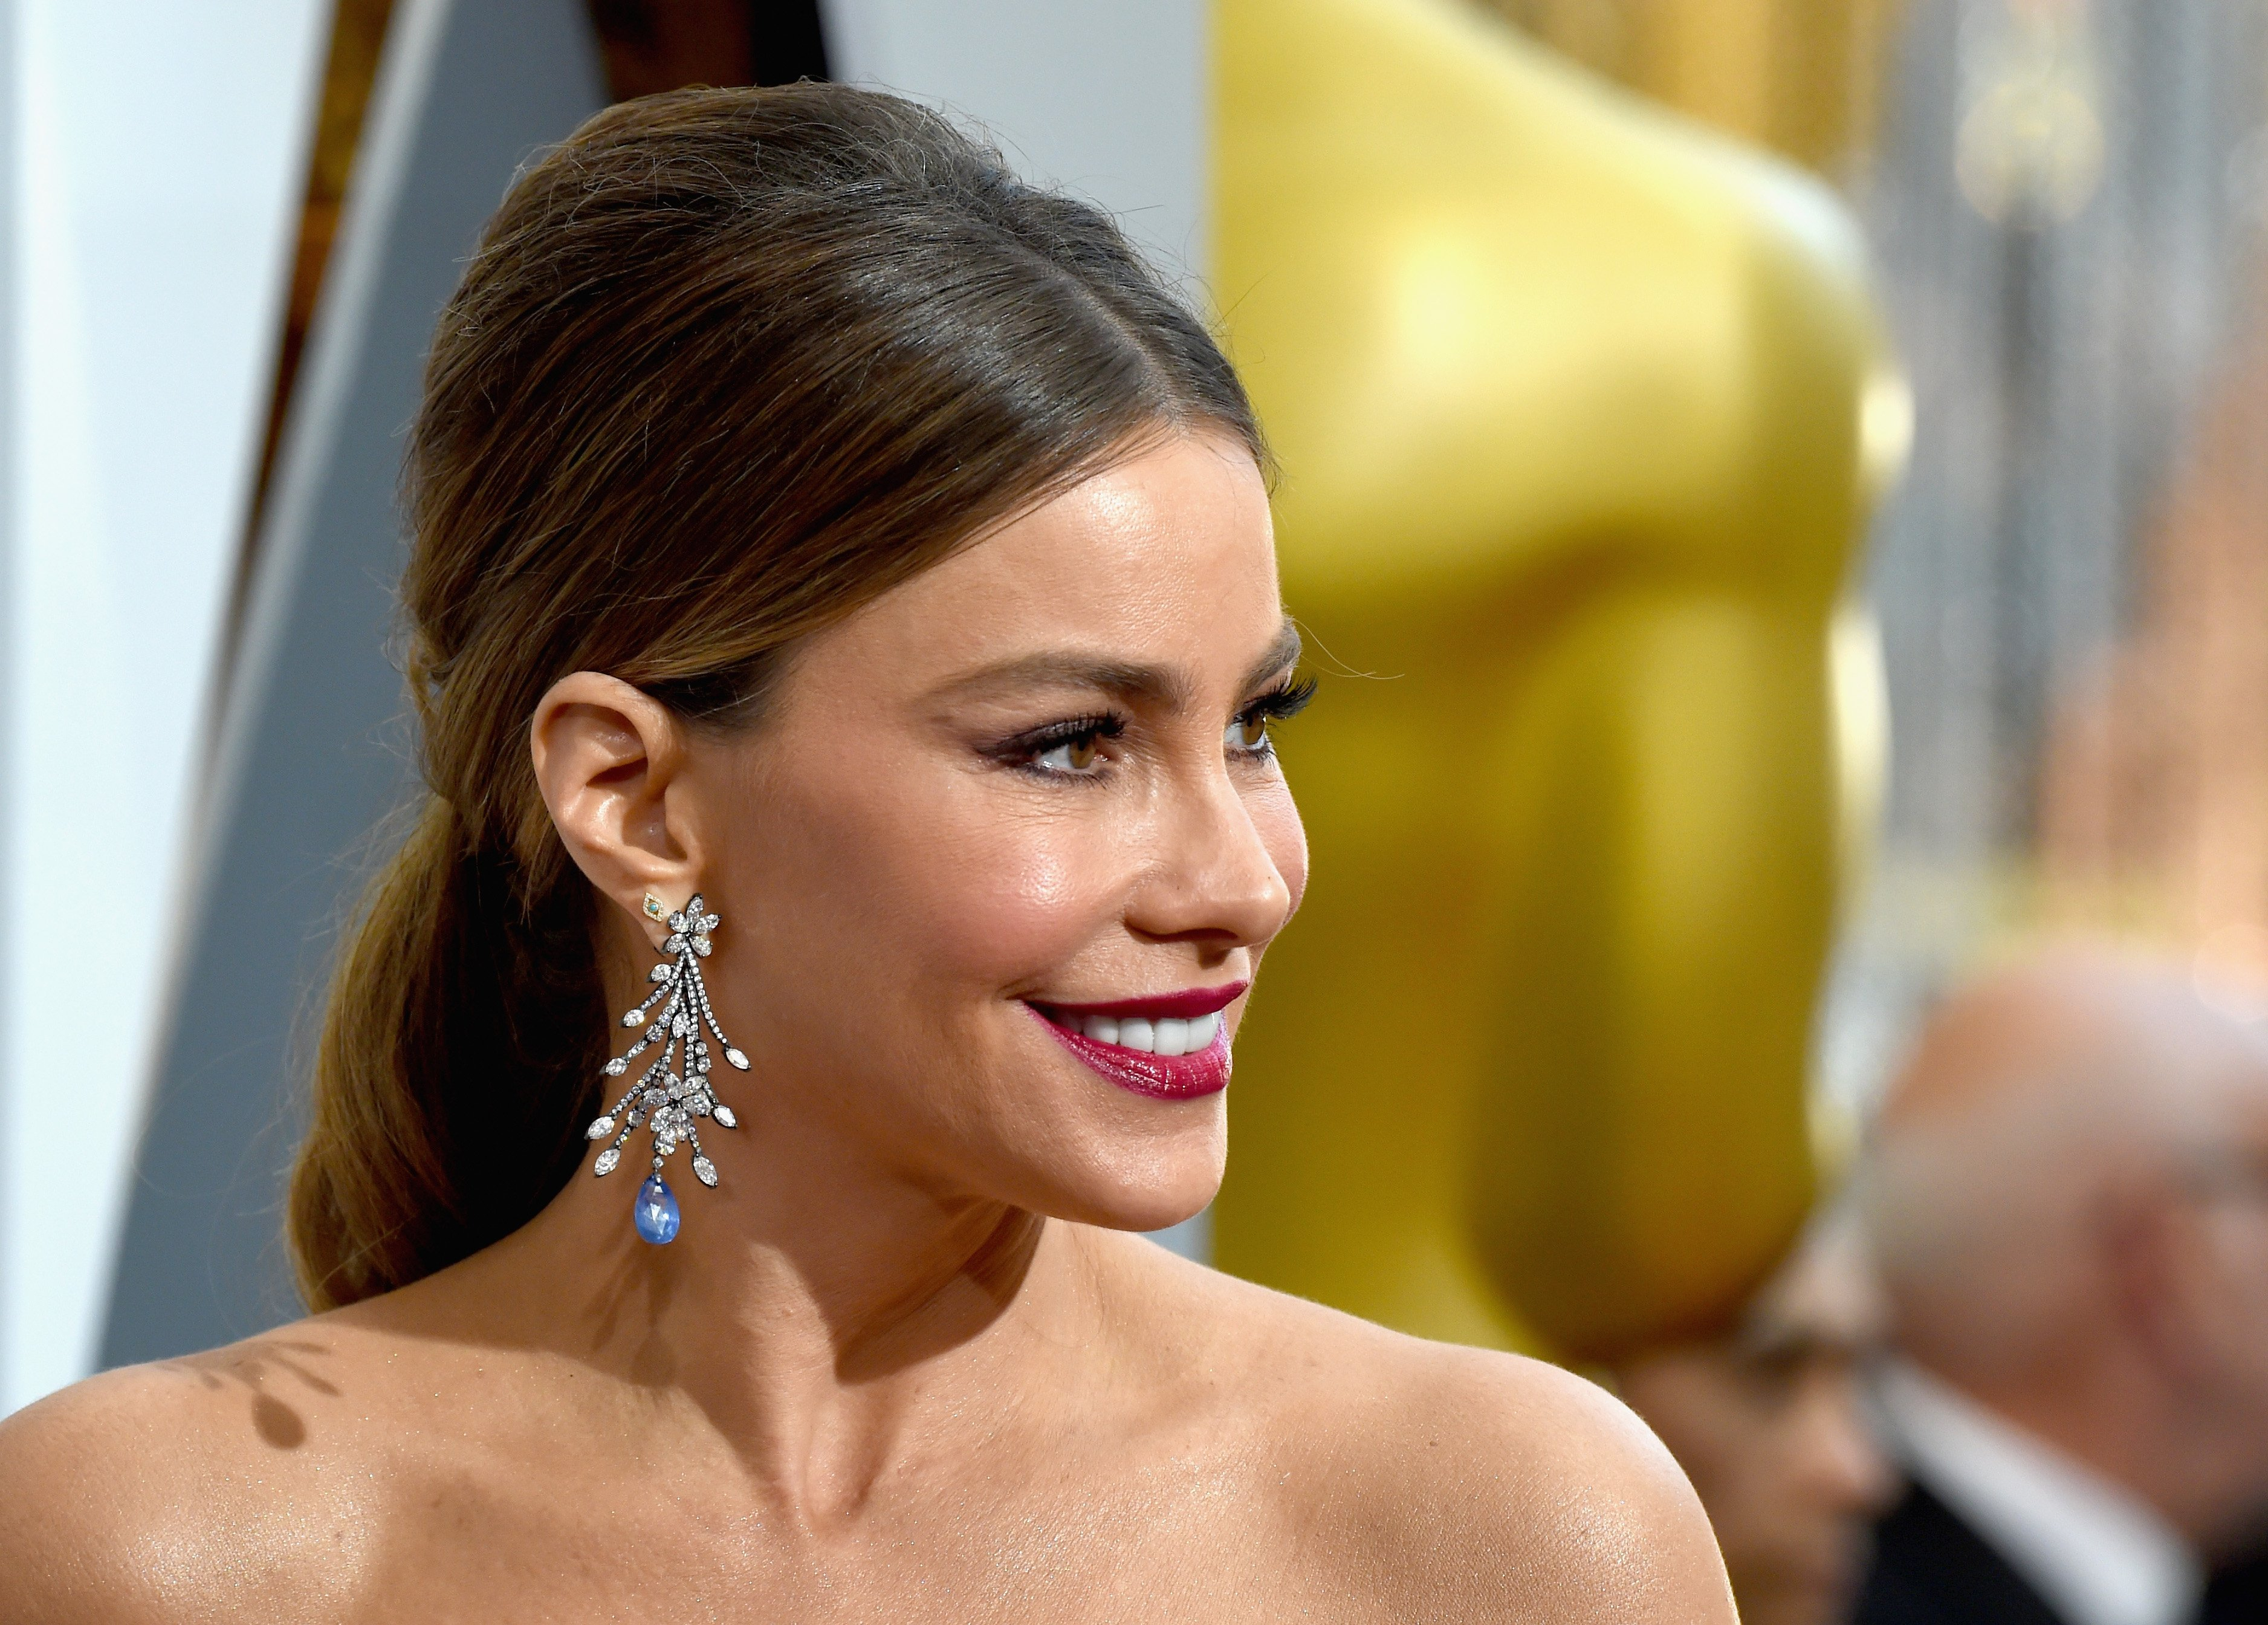 """""""Modern Family"""" star Sofia Vergara, 48, attends the 2016 Academy Awards at Hollywood & Highland Center in California.   Photo: Getty Images"""